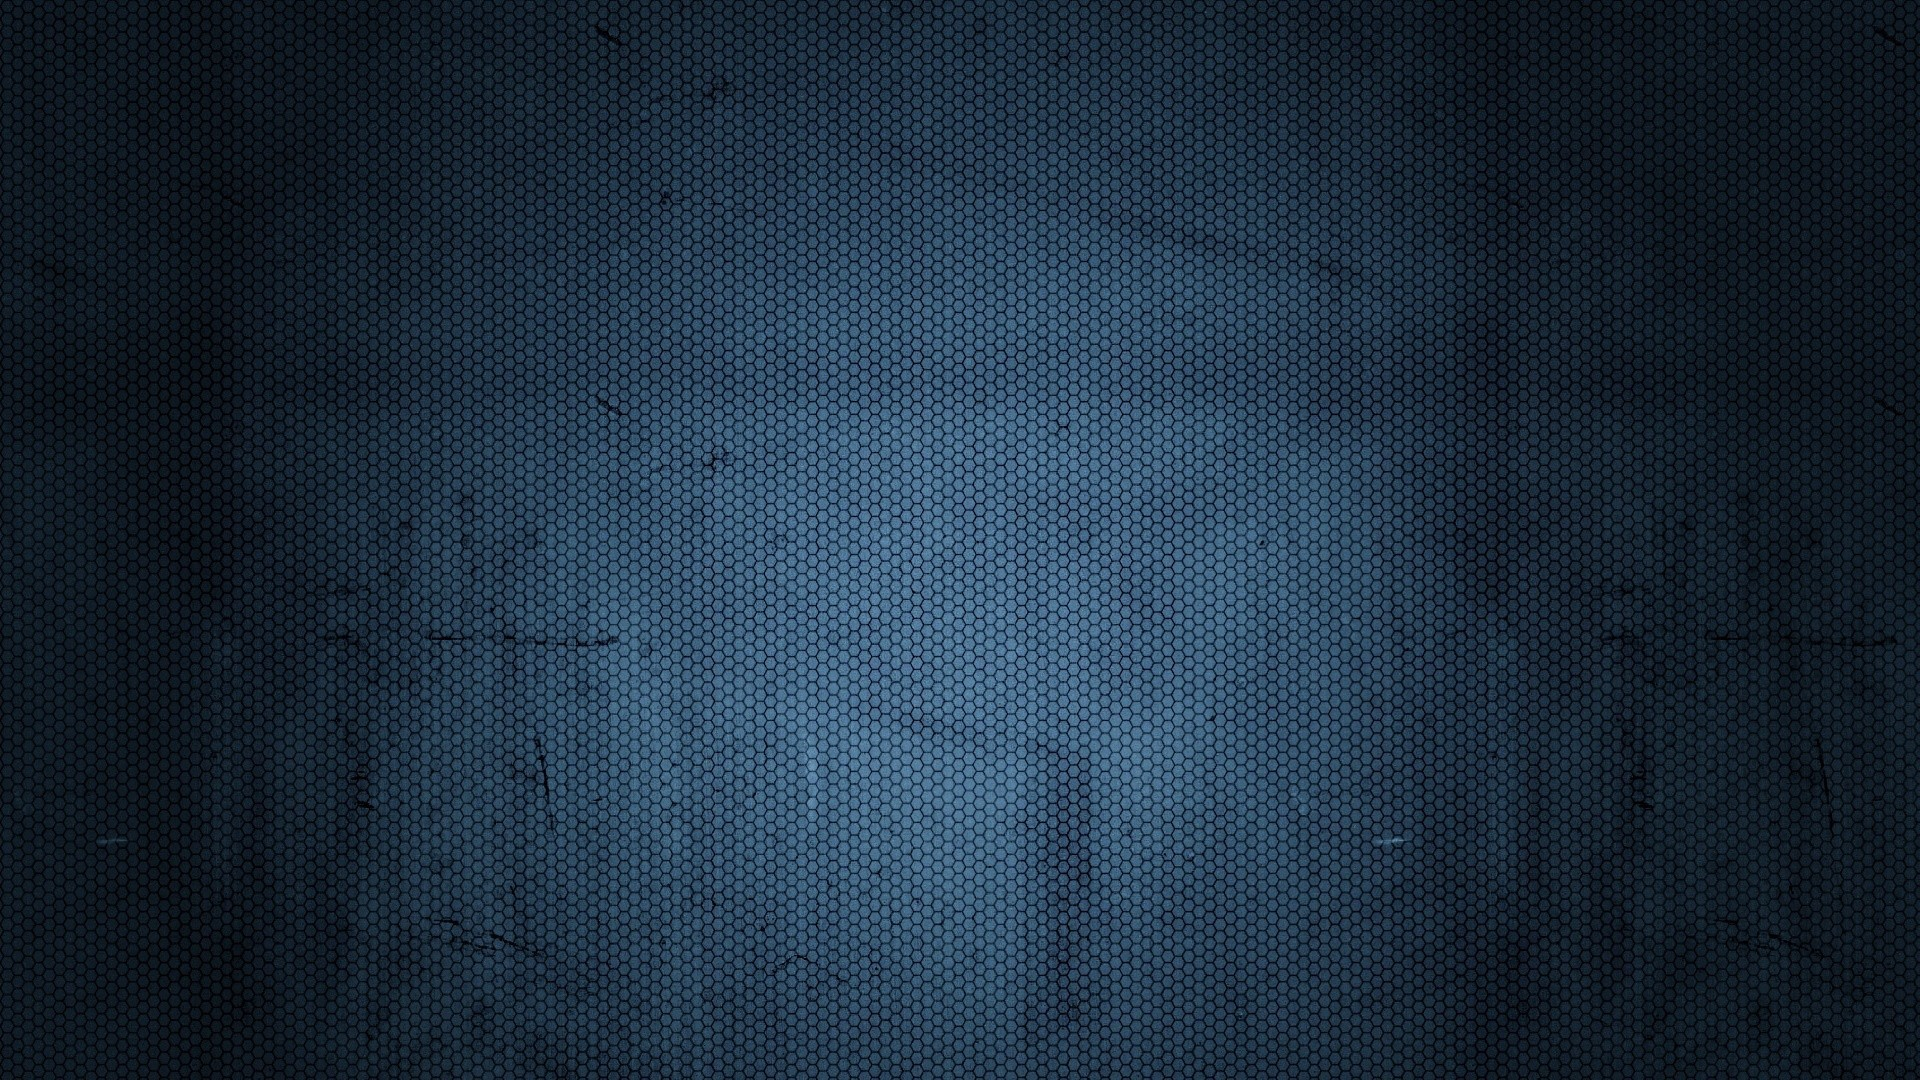 abstract wallpapers texture dark blue wallpaper desktop 1920x1080